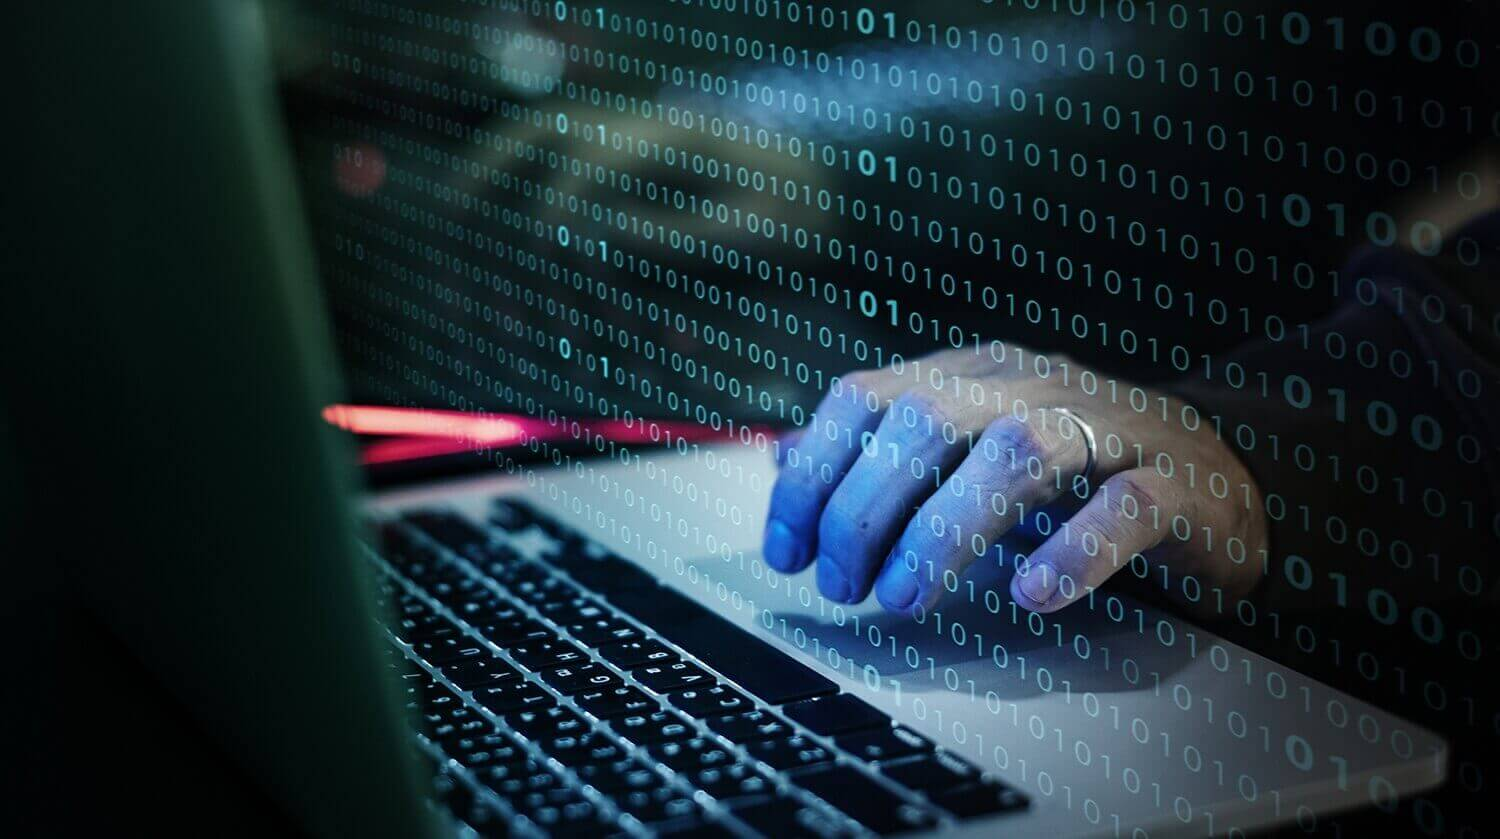 How to Implement a Foolproof Cybersecurity Plan?